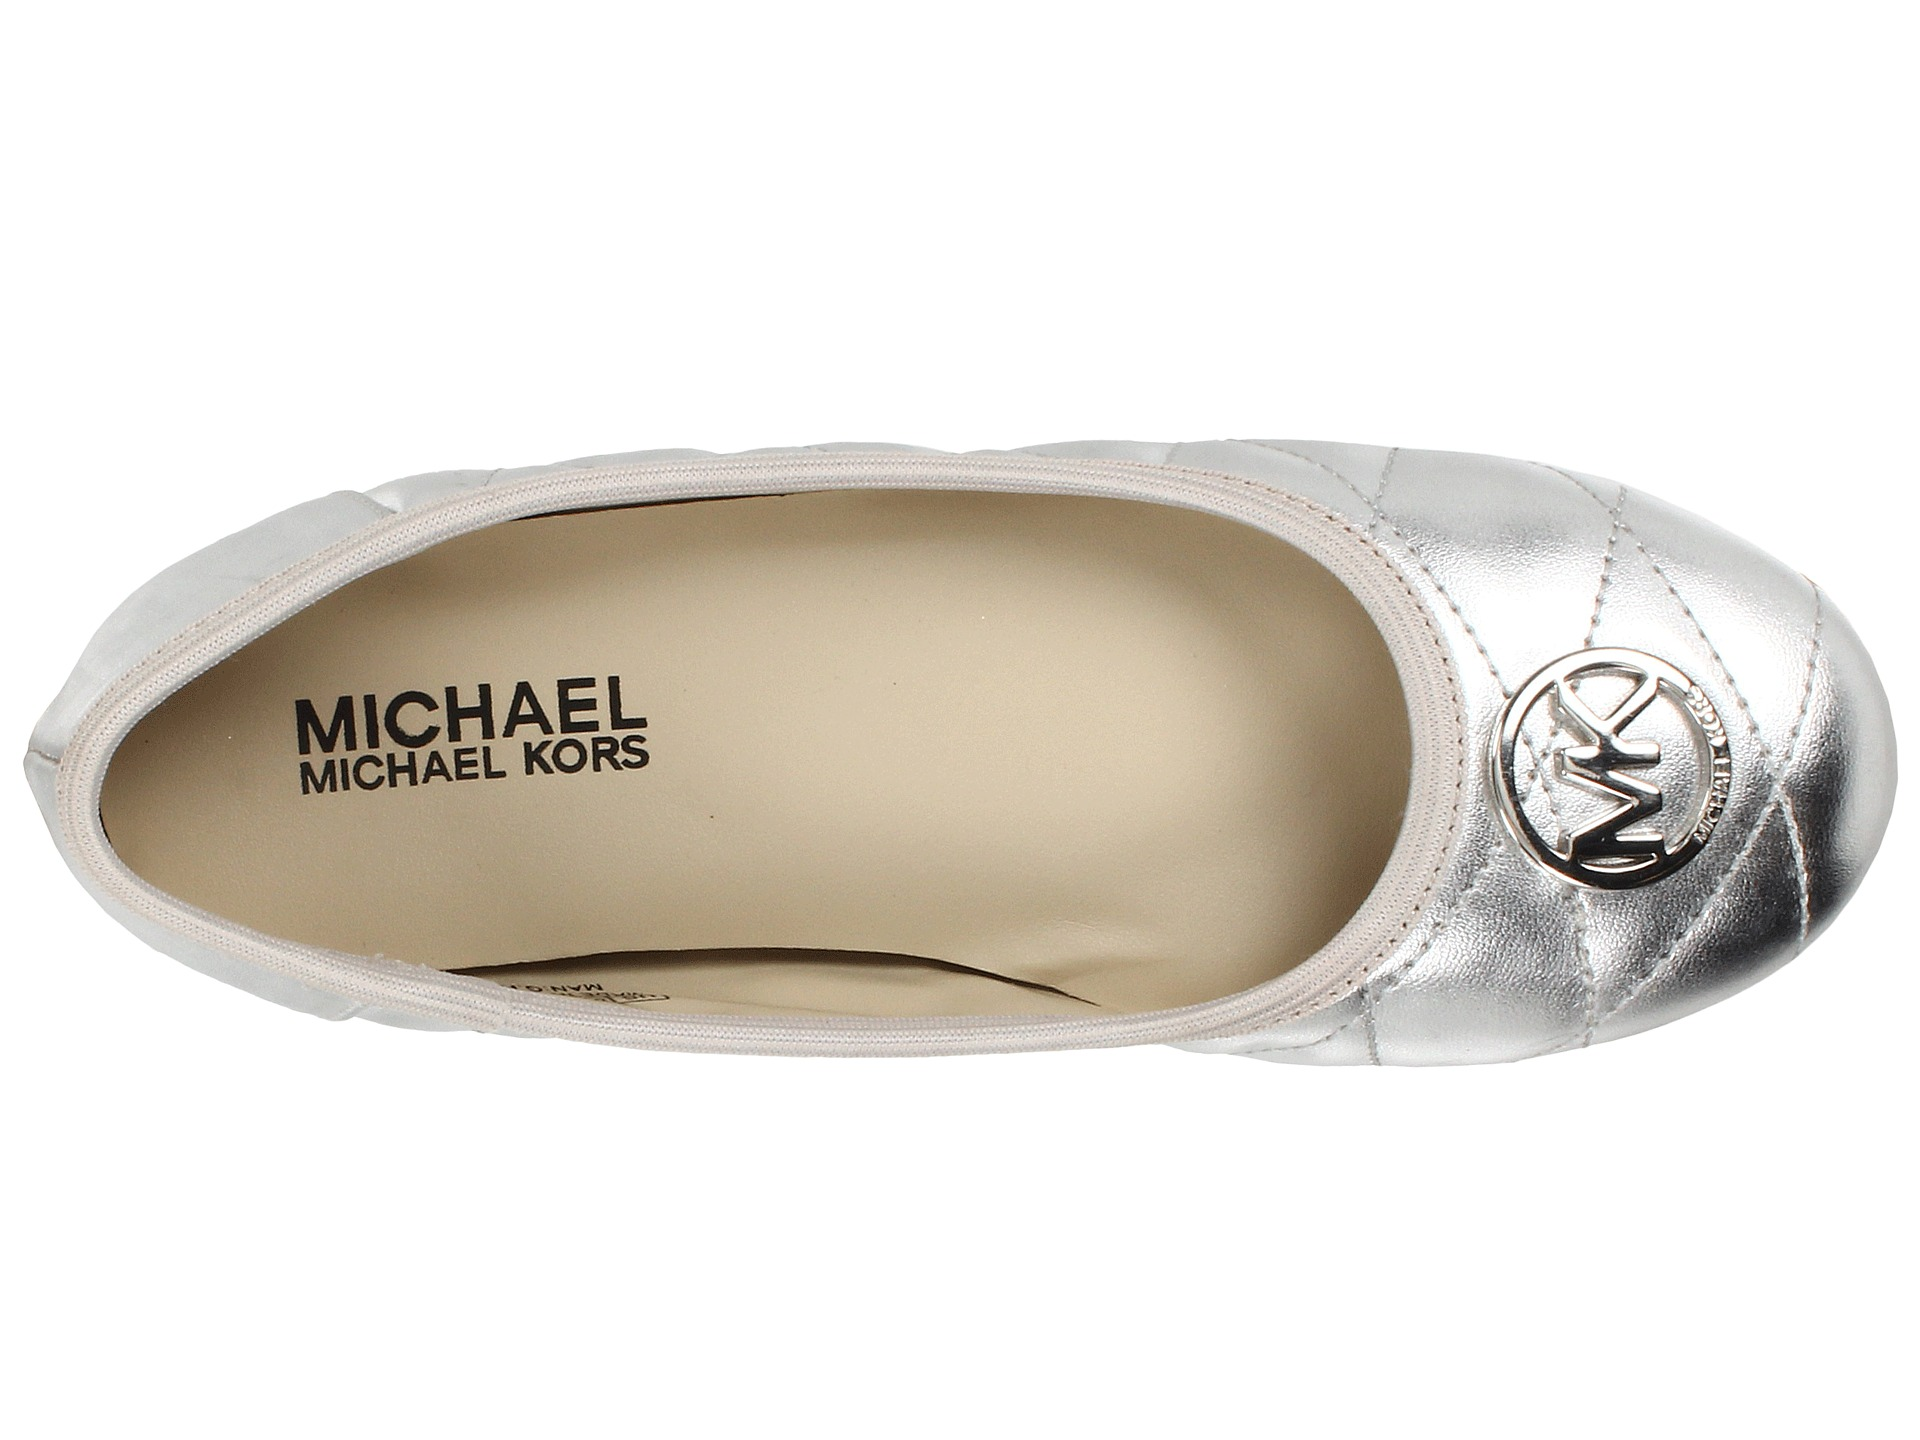 Michael Kors Kids Shoes Girls Michael michael kors kids faye